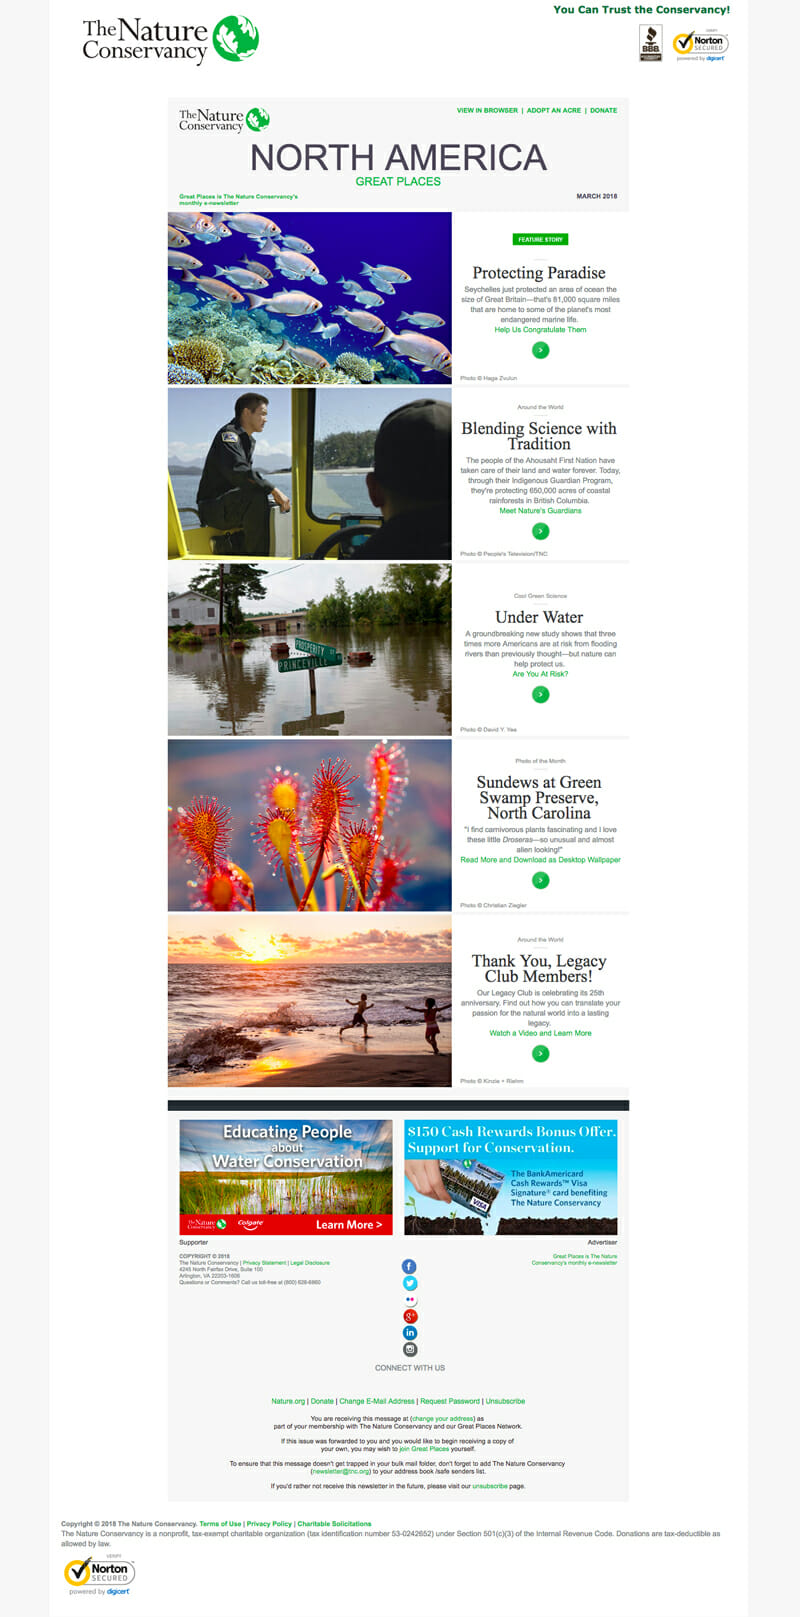 The Nature Conservancy is an Email Newsletter Example For Organisations Protecting The Environment